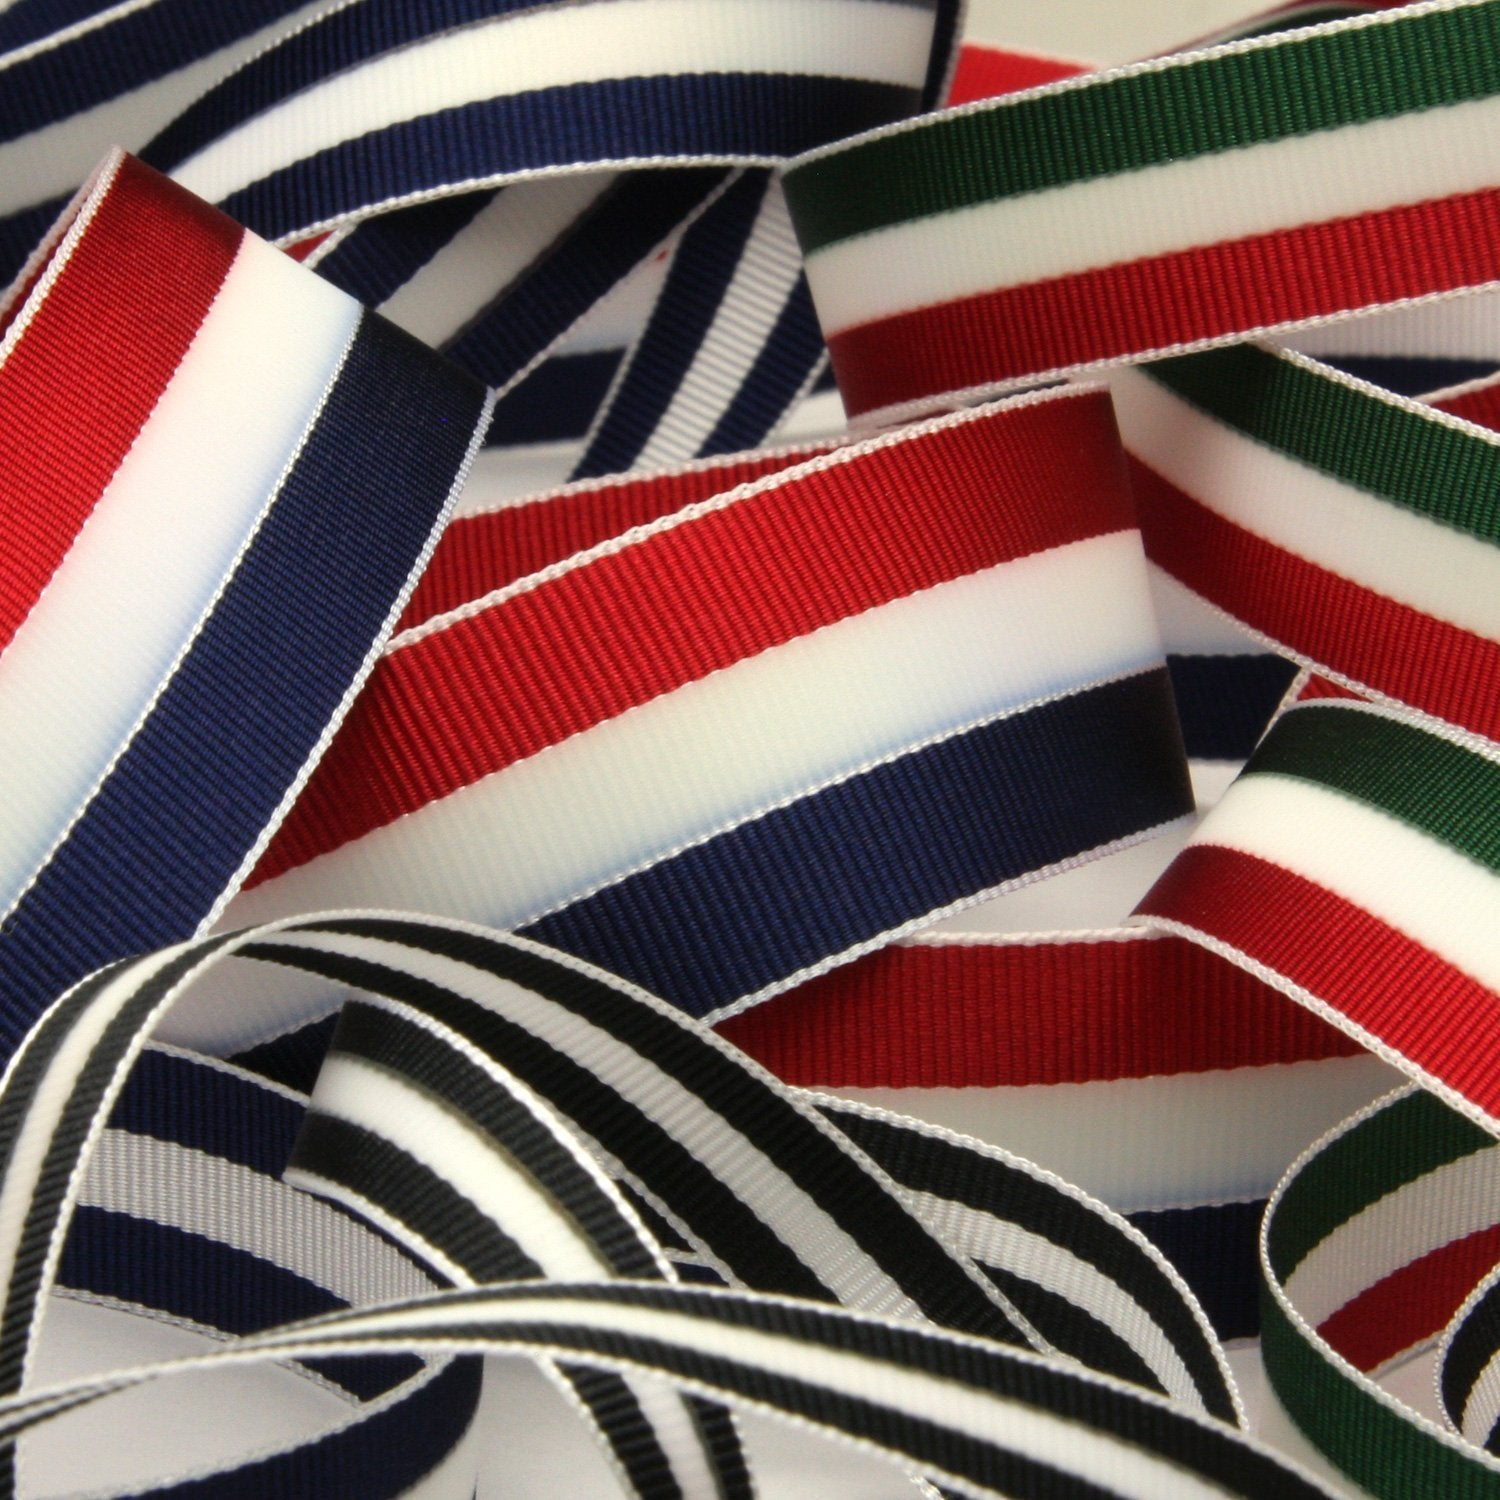 FUJIYAMA RIBBON [Wholesale] Aurora Reflect Grosgrain Ribbon 24mm 30 Meters Roll Navy Blue / White / Navy Blue